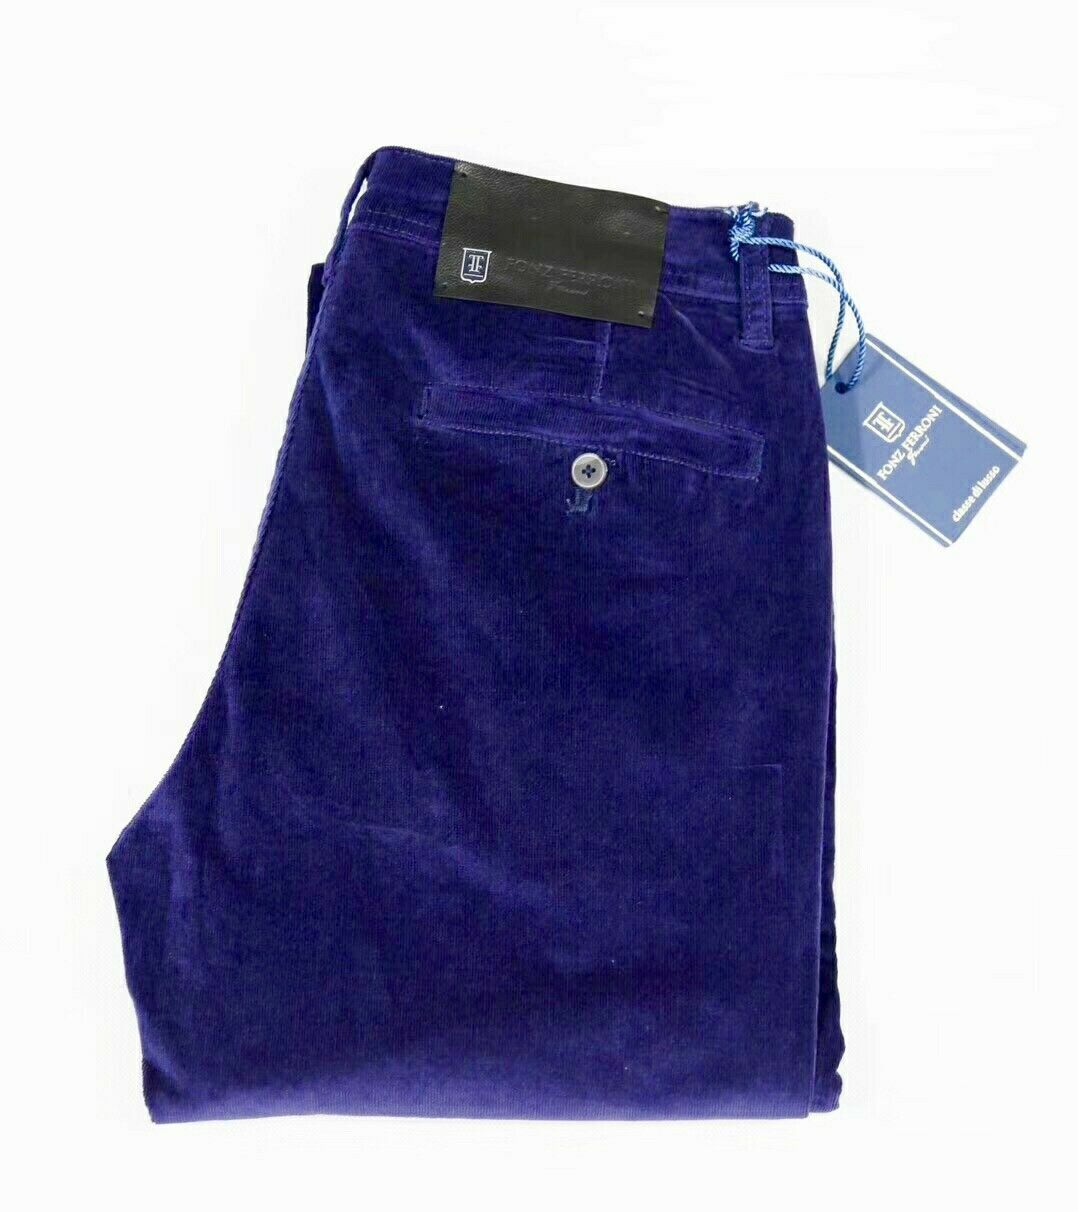 Fonz Ferroni Corduroy Pants Purple Stretch Fabric Modl  JFW-9801 Straight Sz 33